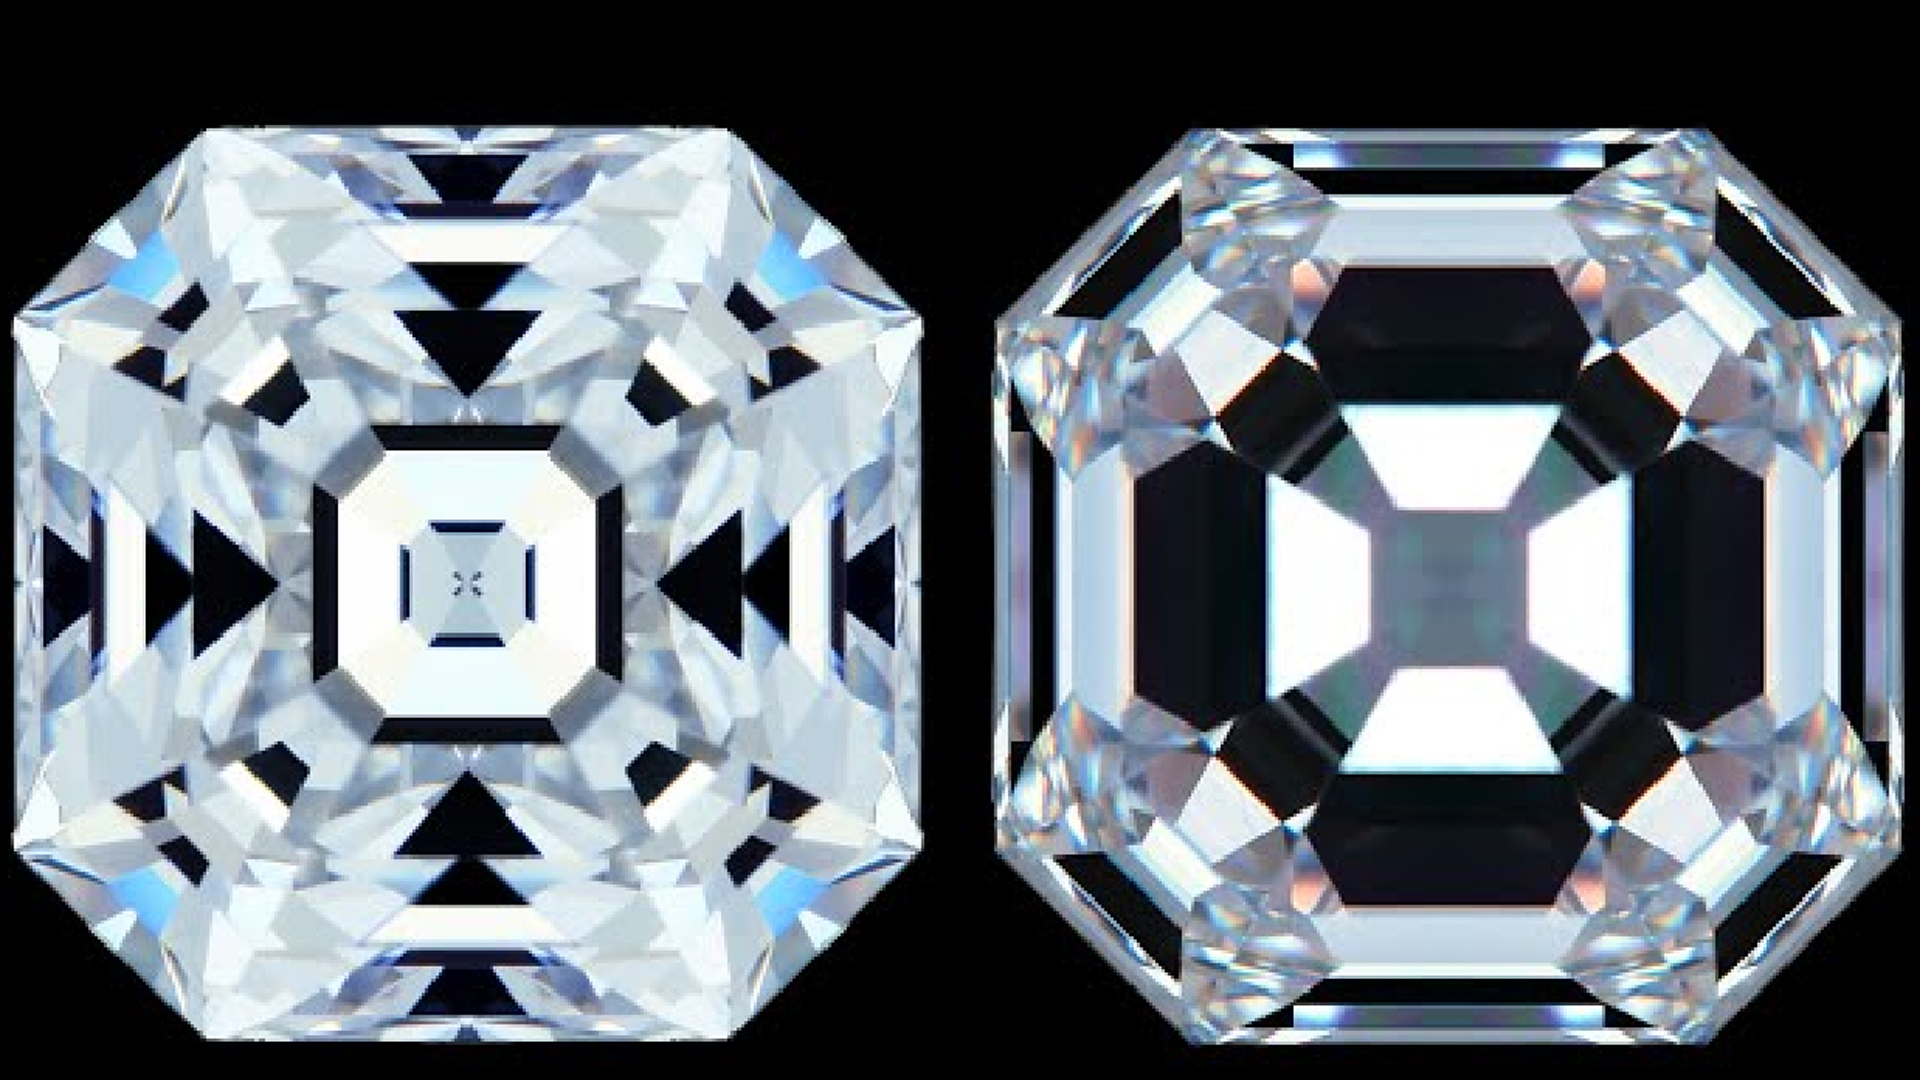 JannPaul: Introducing the Octavia, the World's Most Brilliant Step Cut Diamond